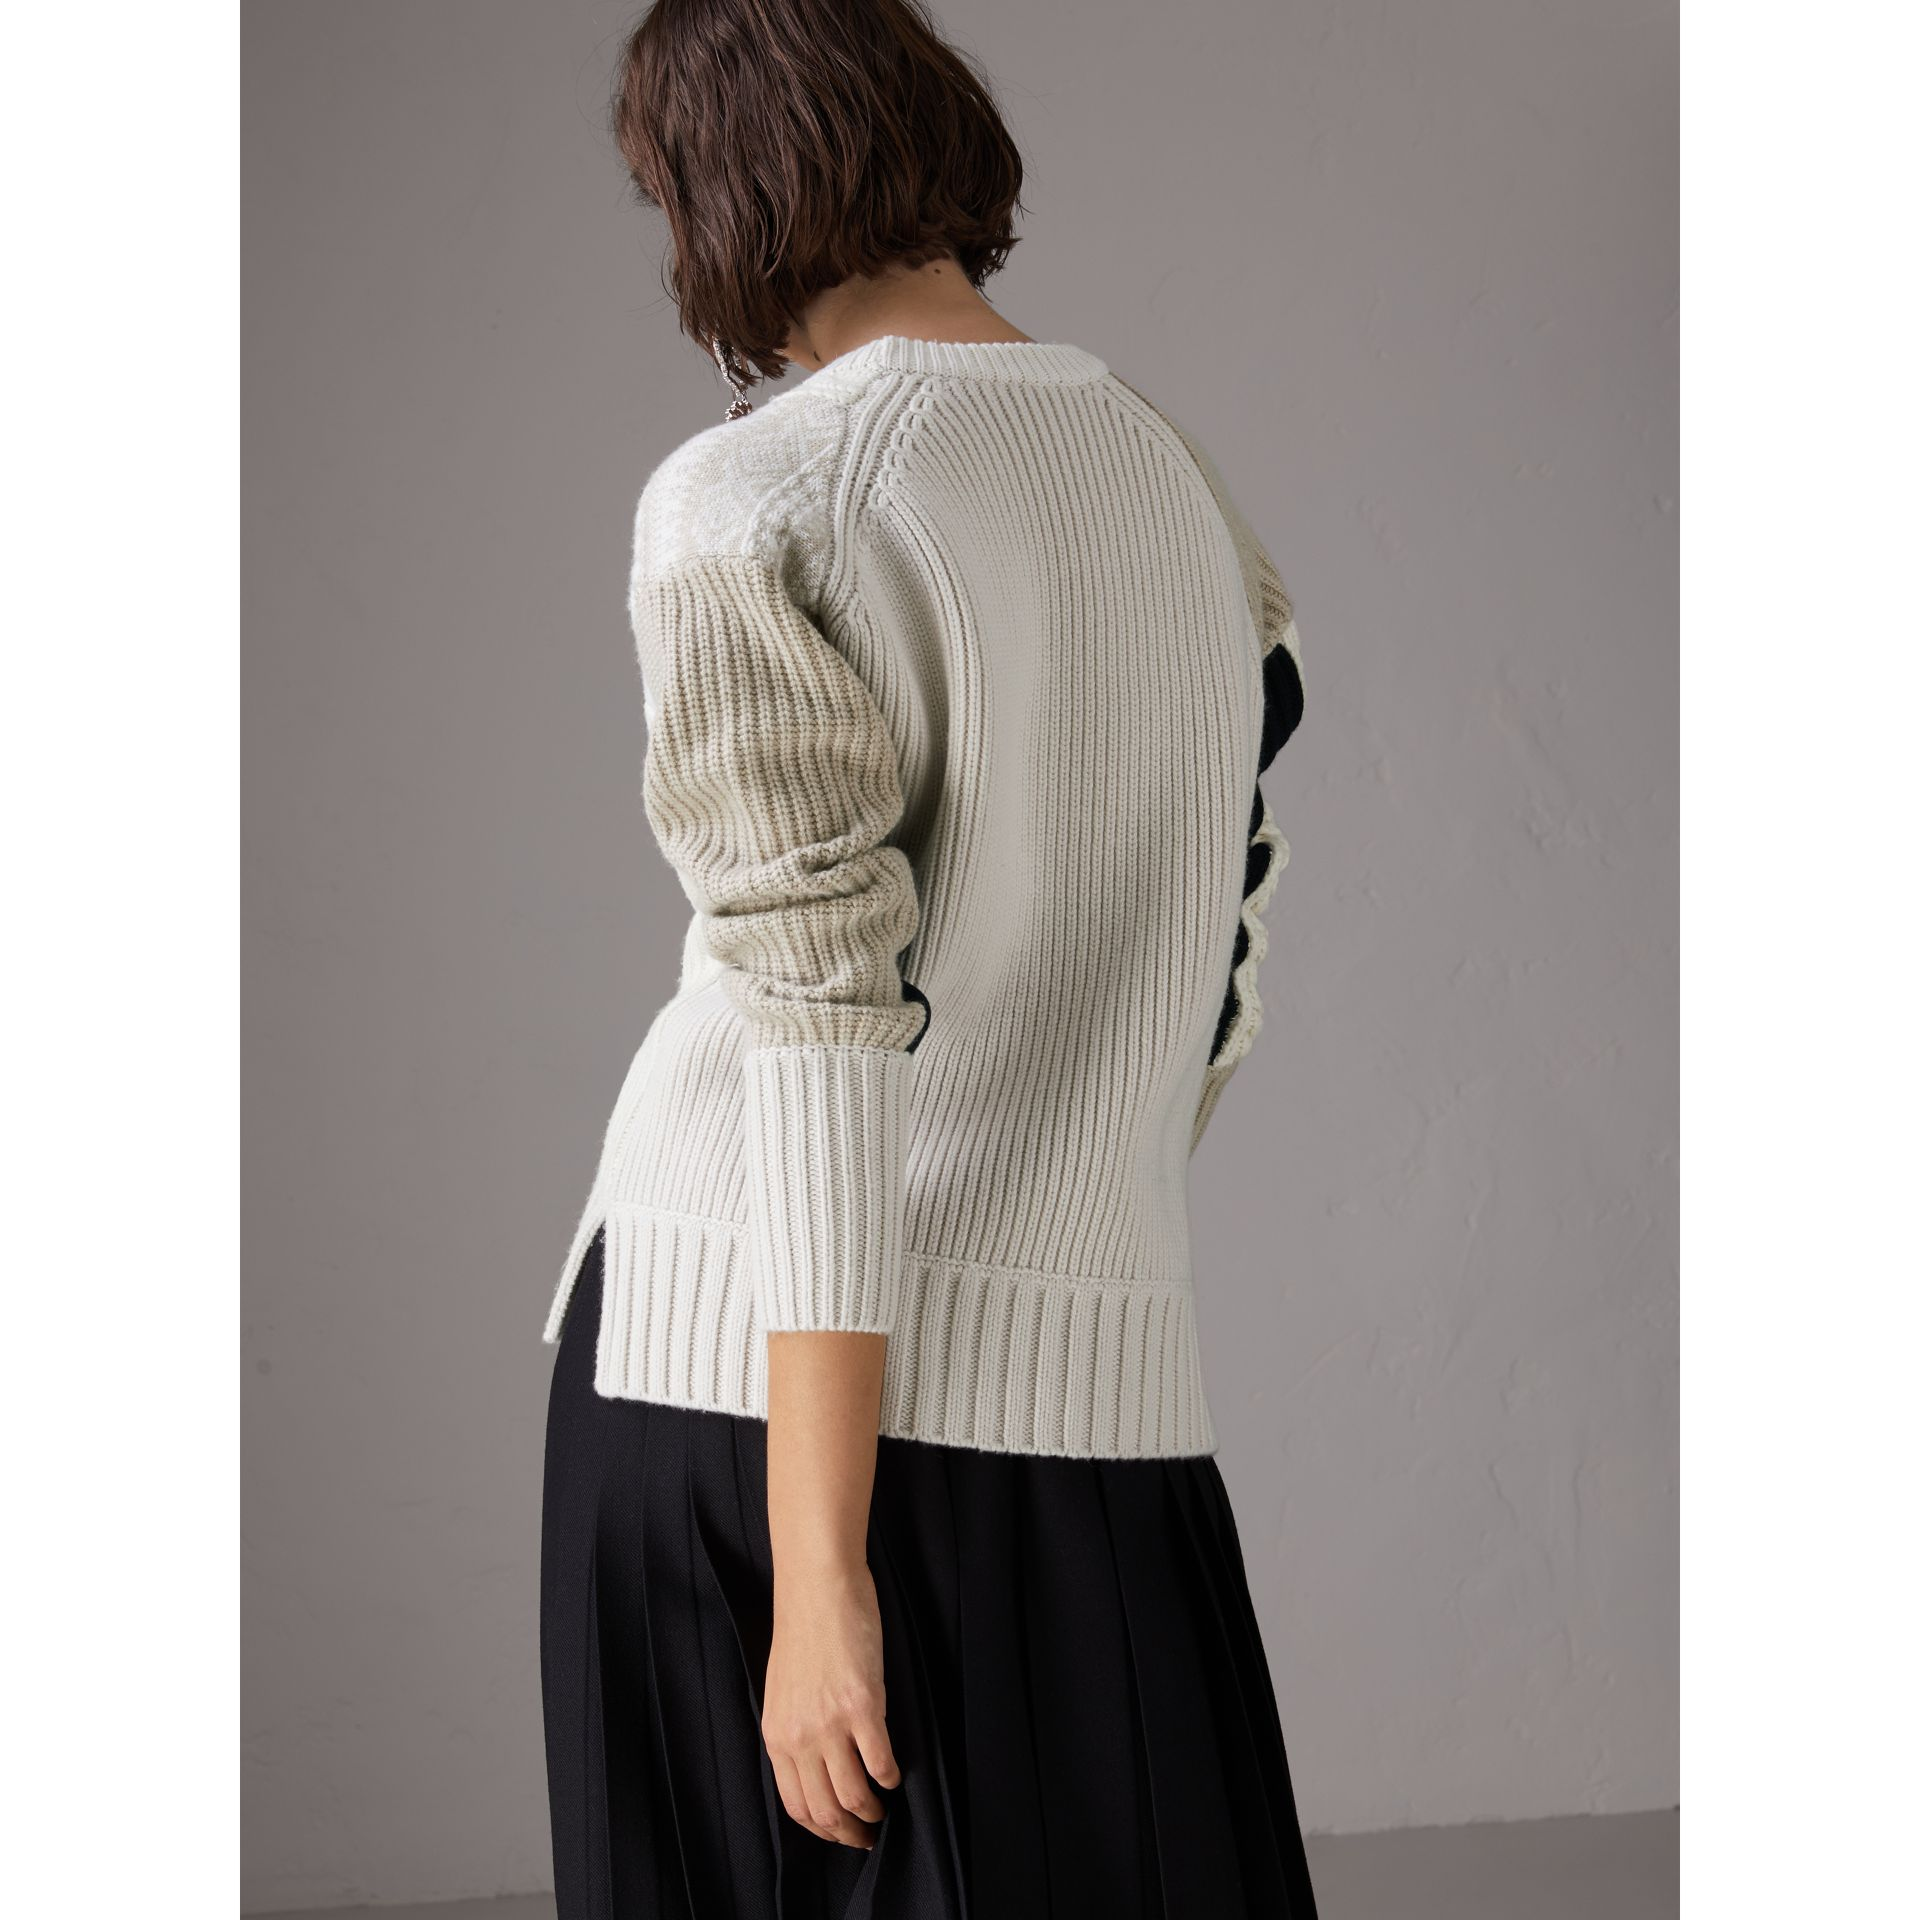 Colour Block Fair Isle and Cable Knit Wool Cashmere Sweater in Ivory - Women | Burberry Australia - gallery image 2